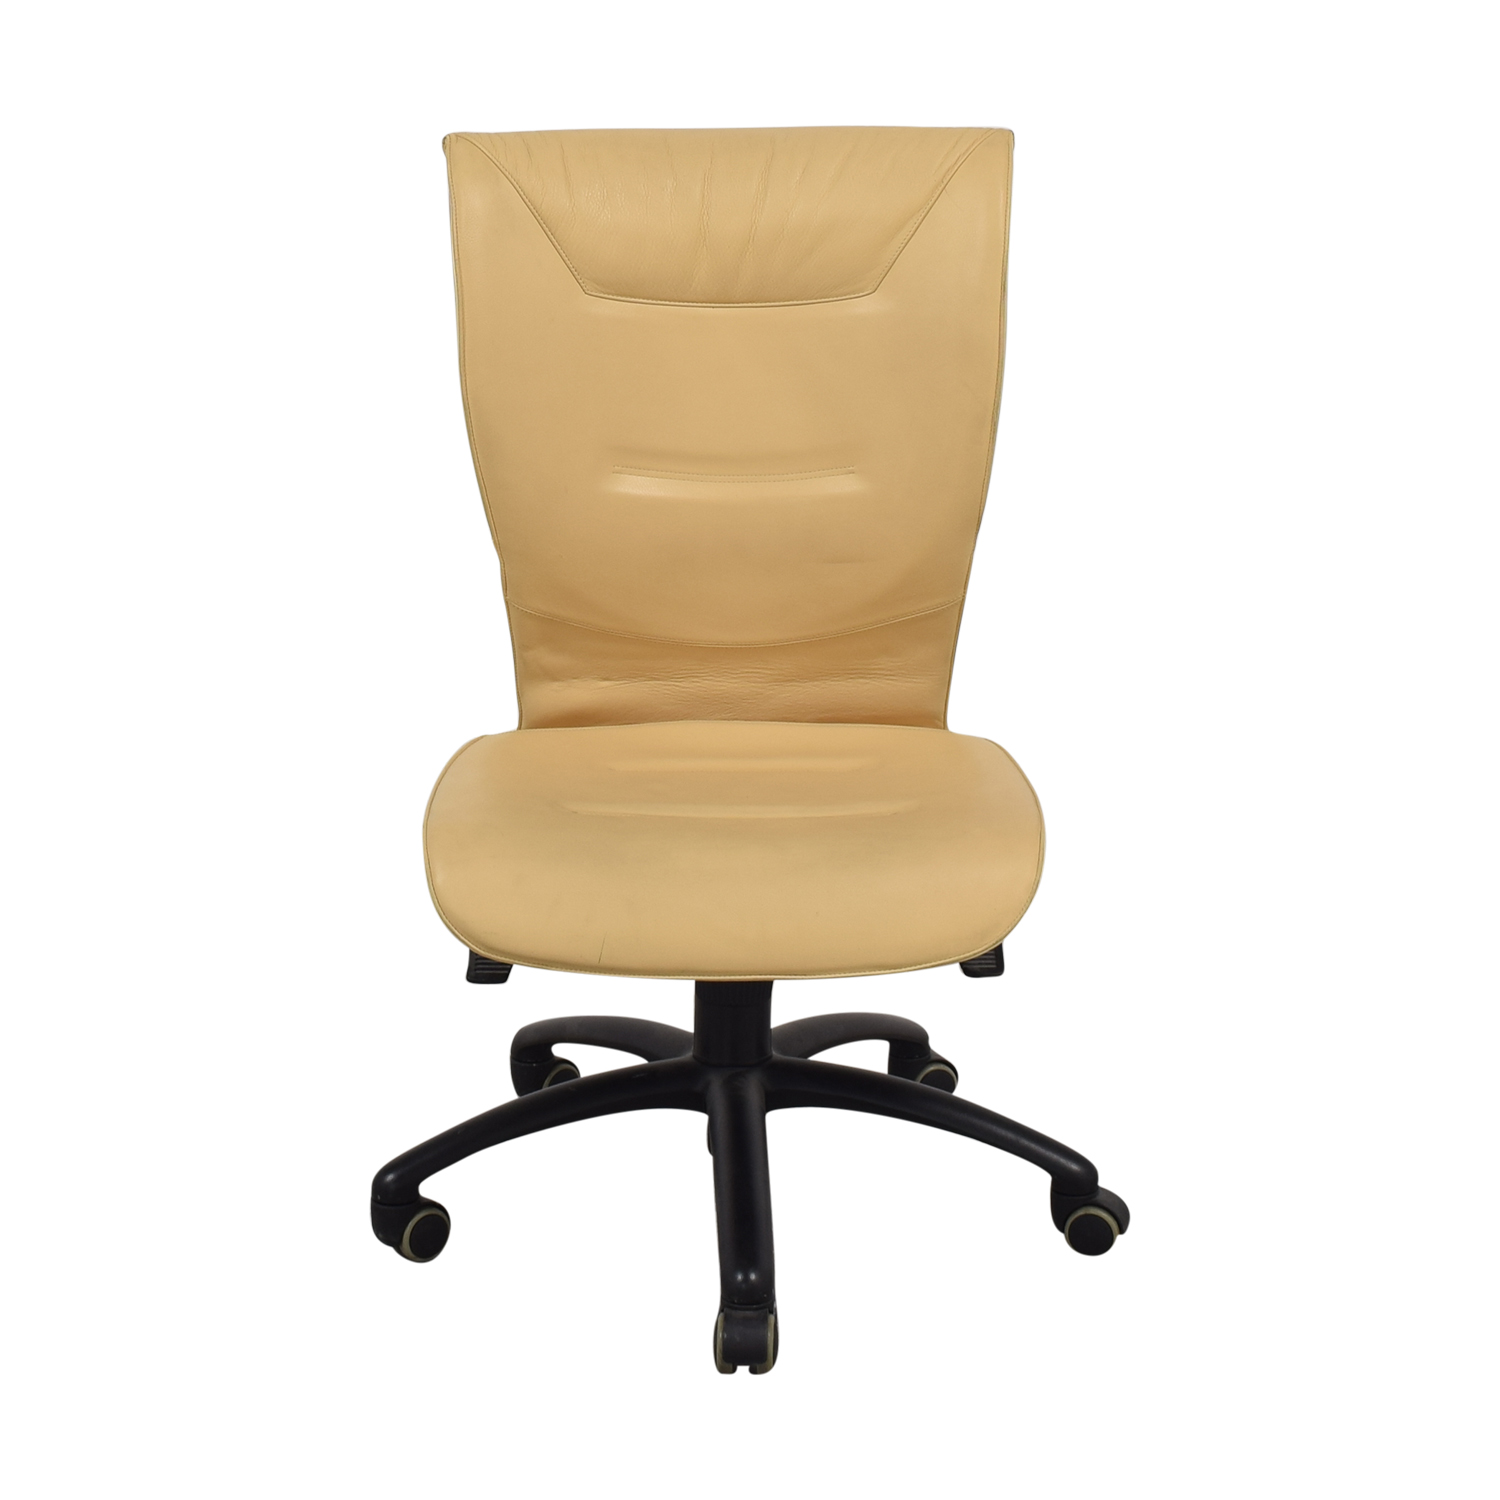 Poltrona Frau Poltrona Frau Office Chair dimensions